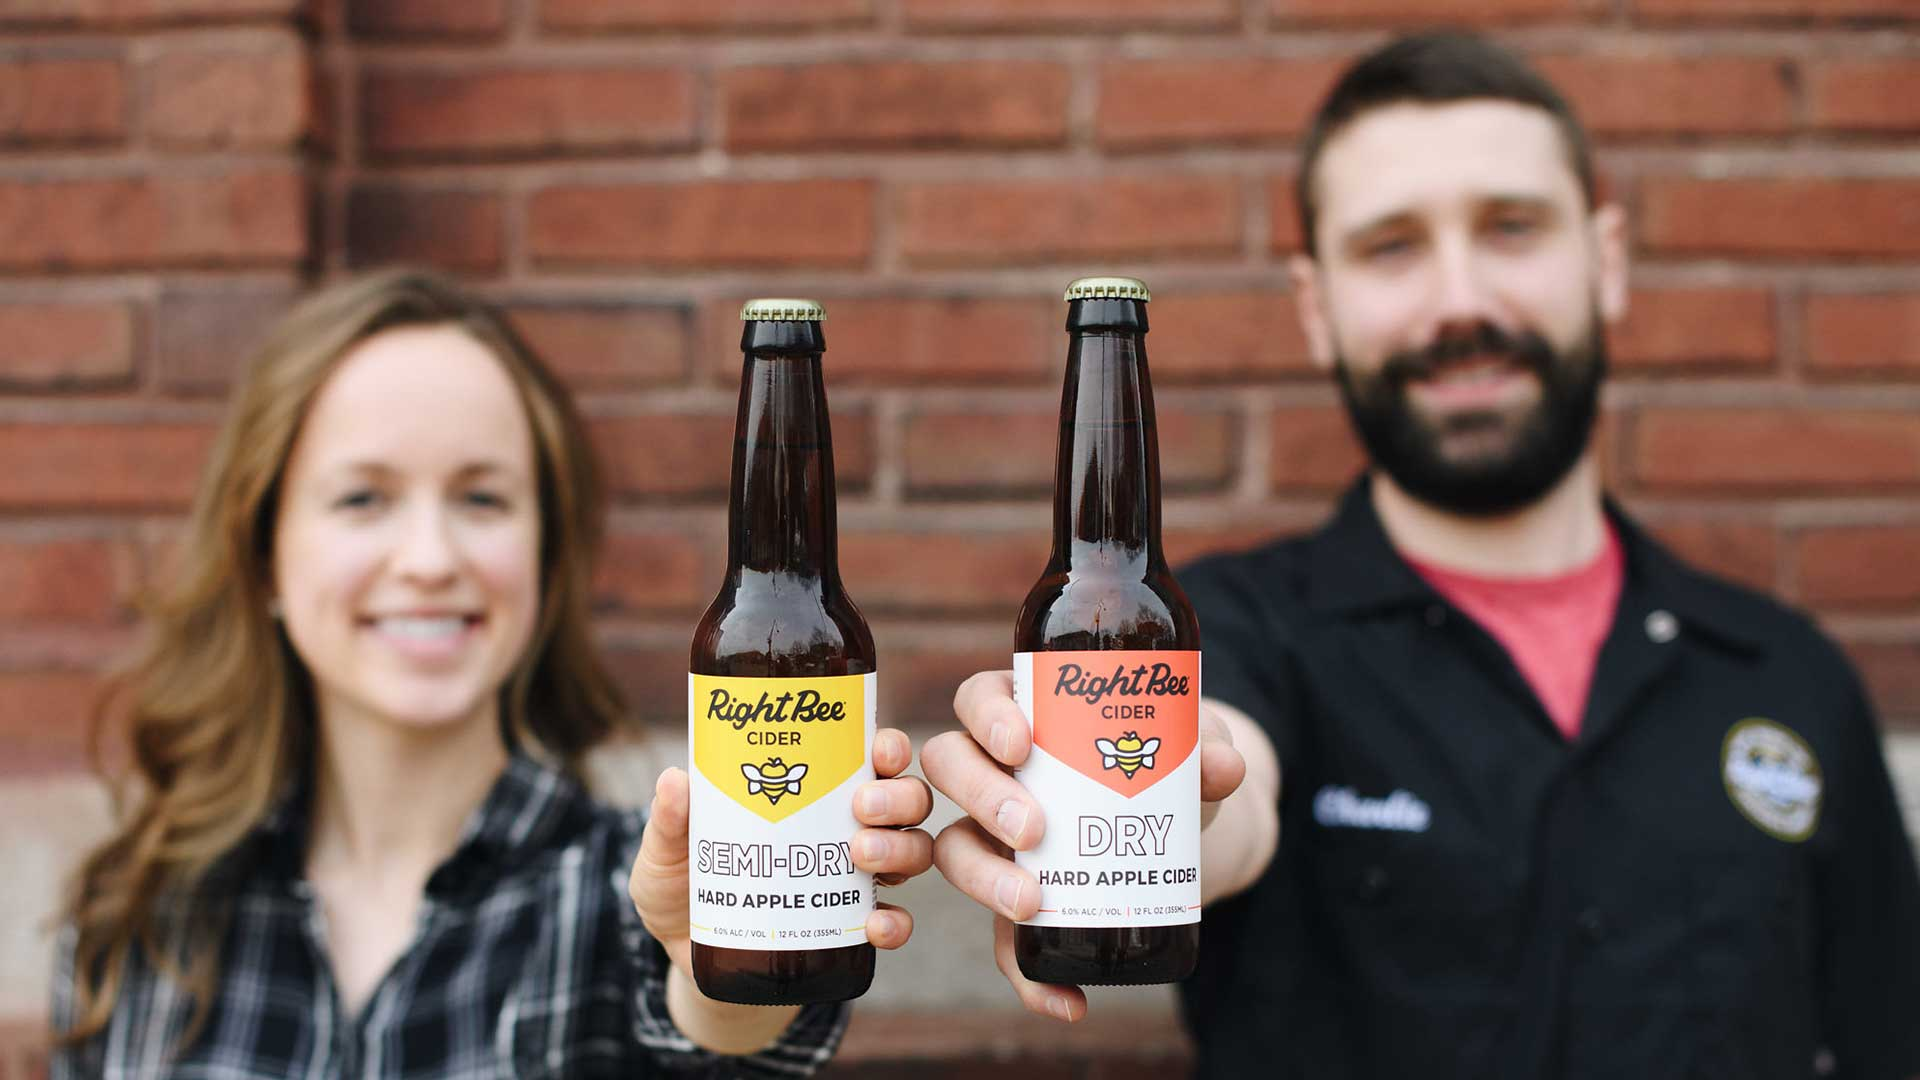 Owners of Right Bee pose with cider bottles